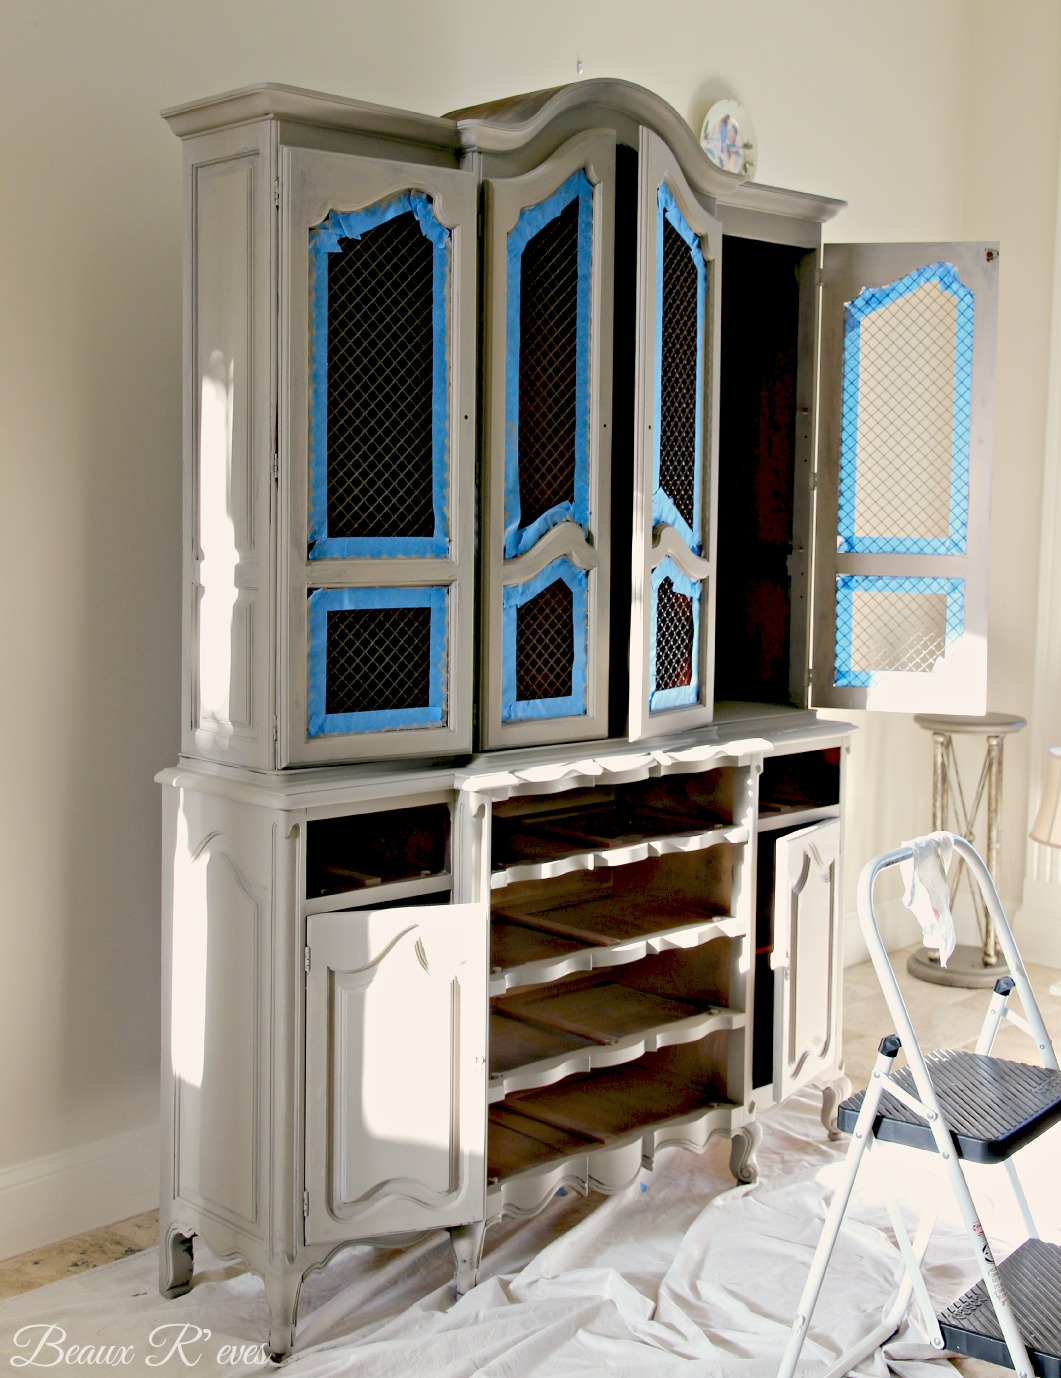 Living Room Hutch : Beaux R'eves: China Hutch for the Living Room